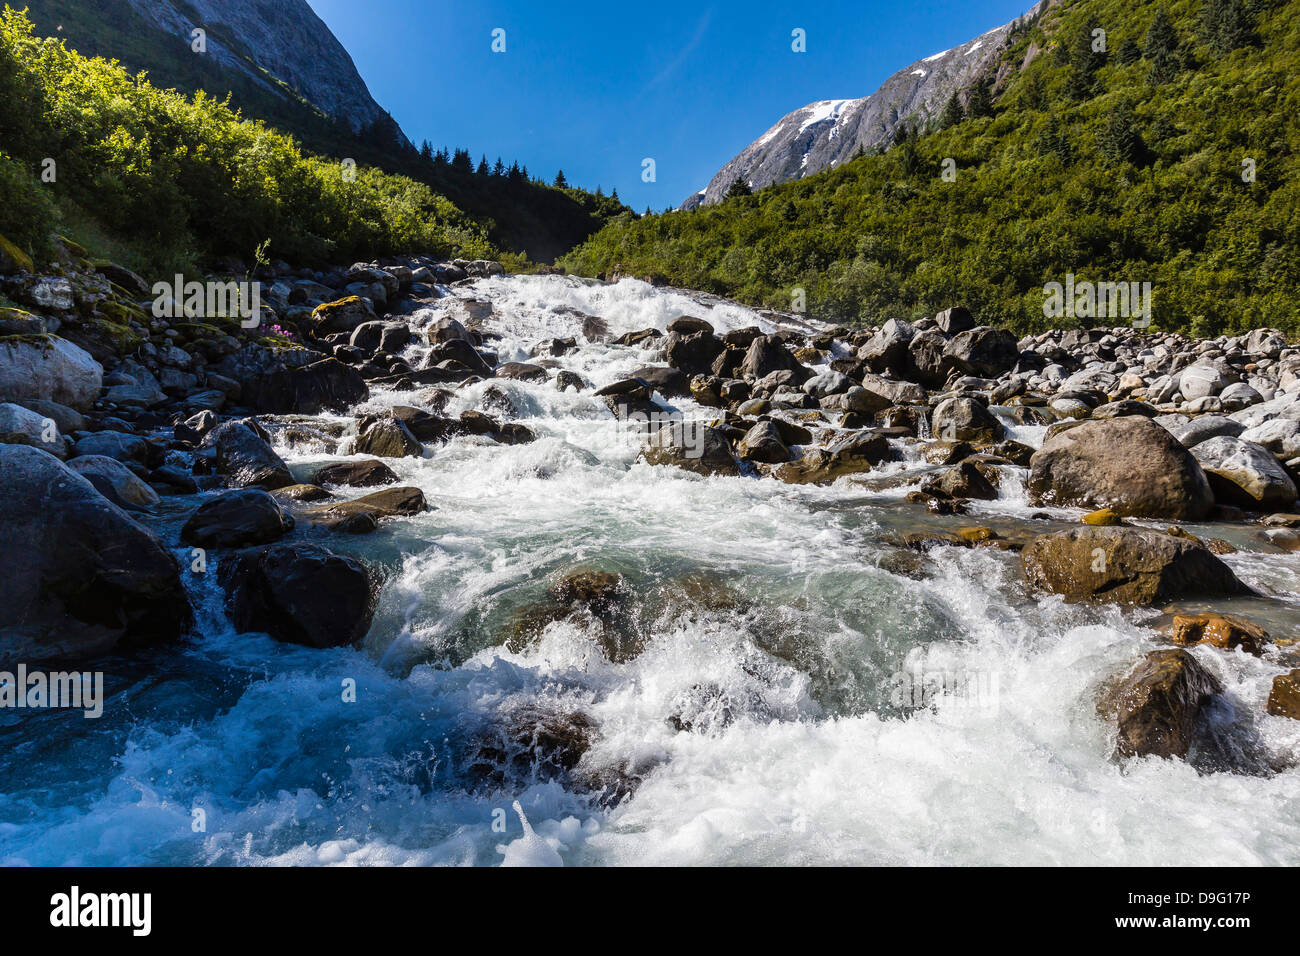 Snow-melt waterfall in Tracy Arm-Ford's Terror Wilderness area, Southeast Alaska, USA - Stock Image